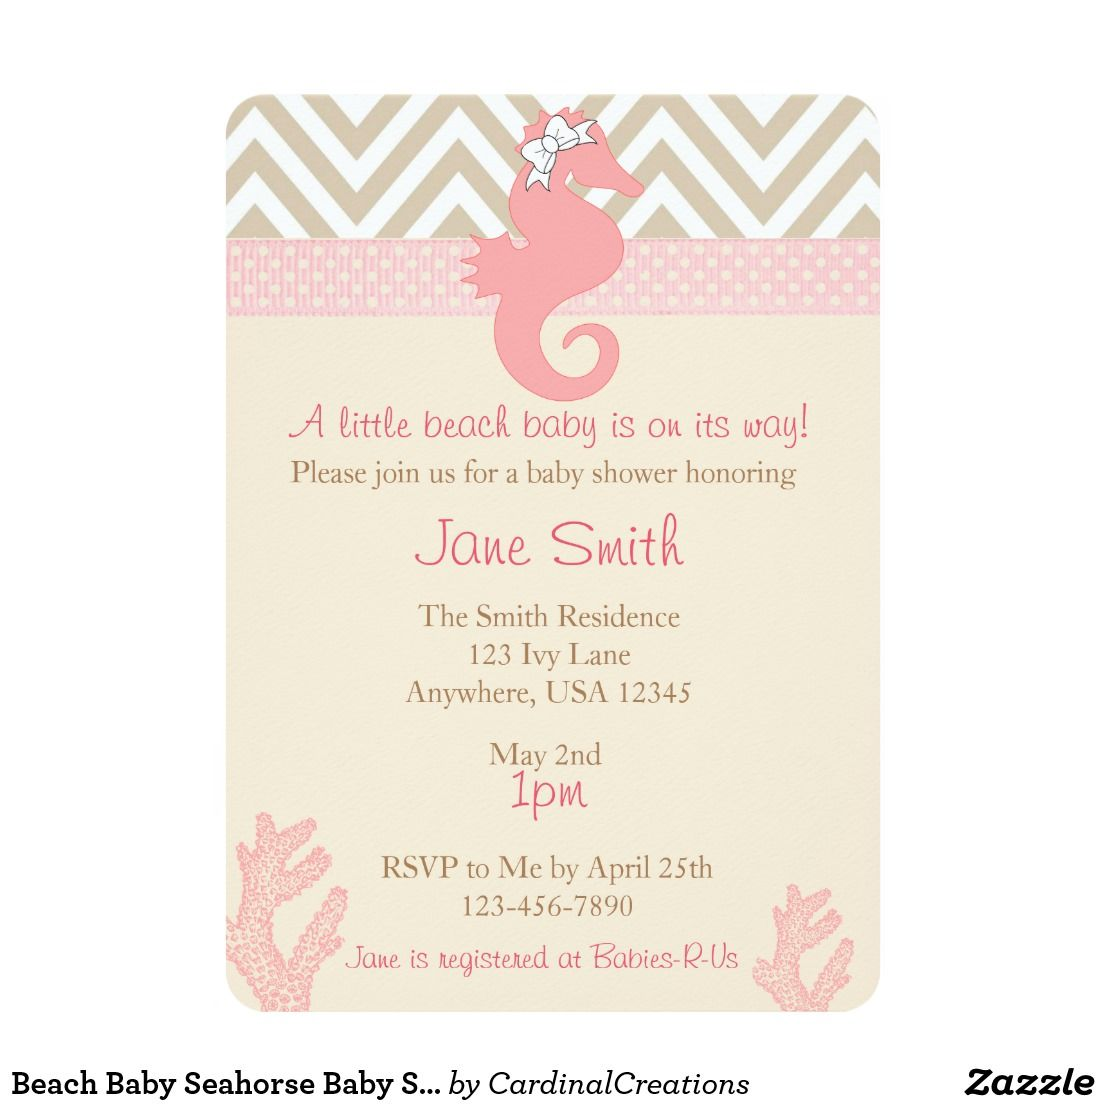 Beach Baby Seahorse Baby Shower Invitation Pinterest Baby